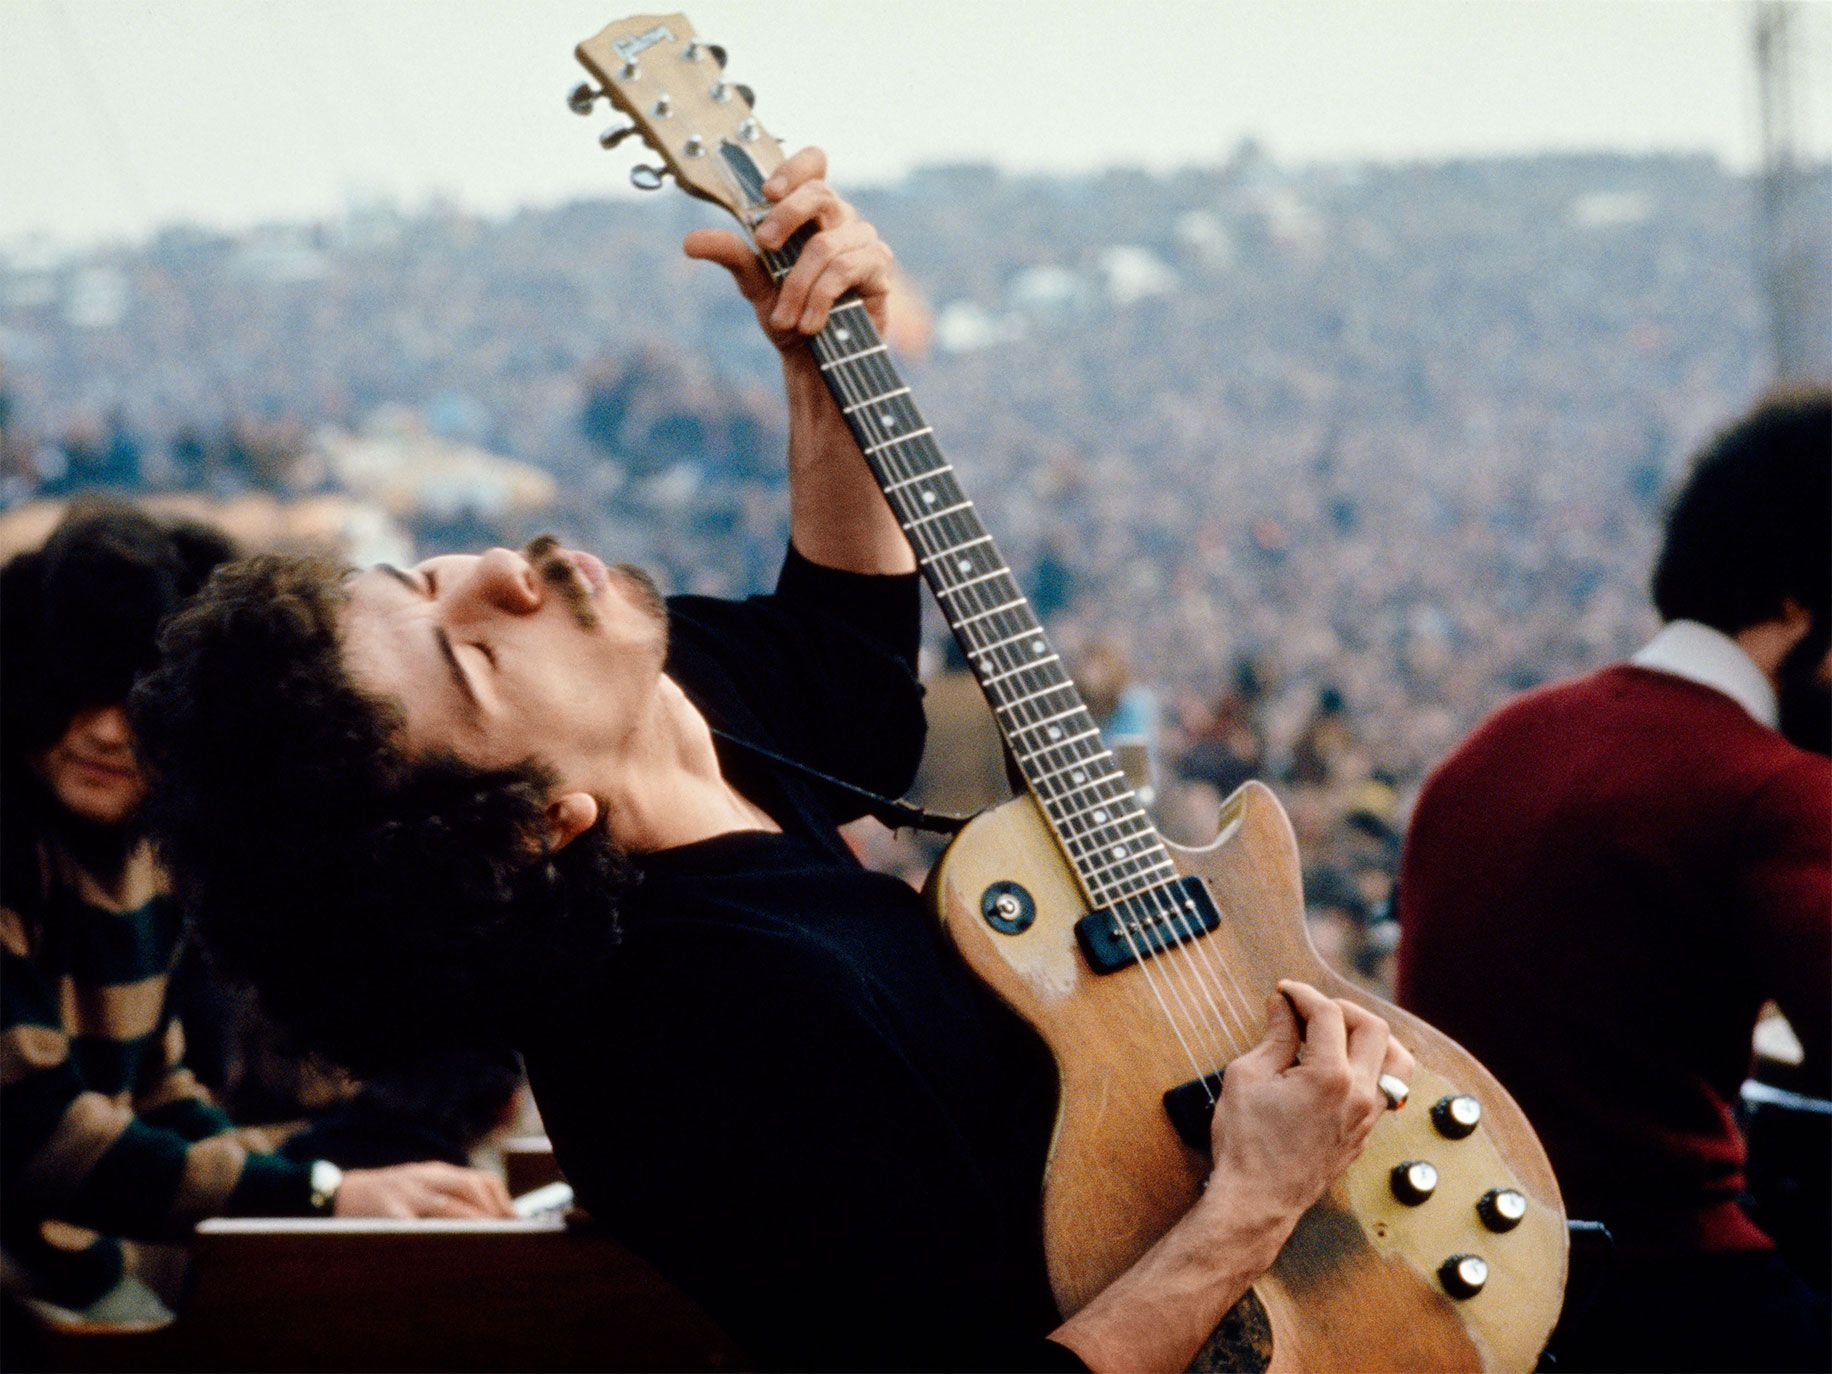 Carlos Santana performing at the Altamont Free Festival, Altamont Speedway, California, 1969.